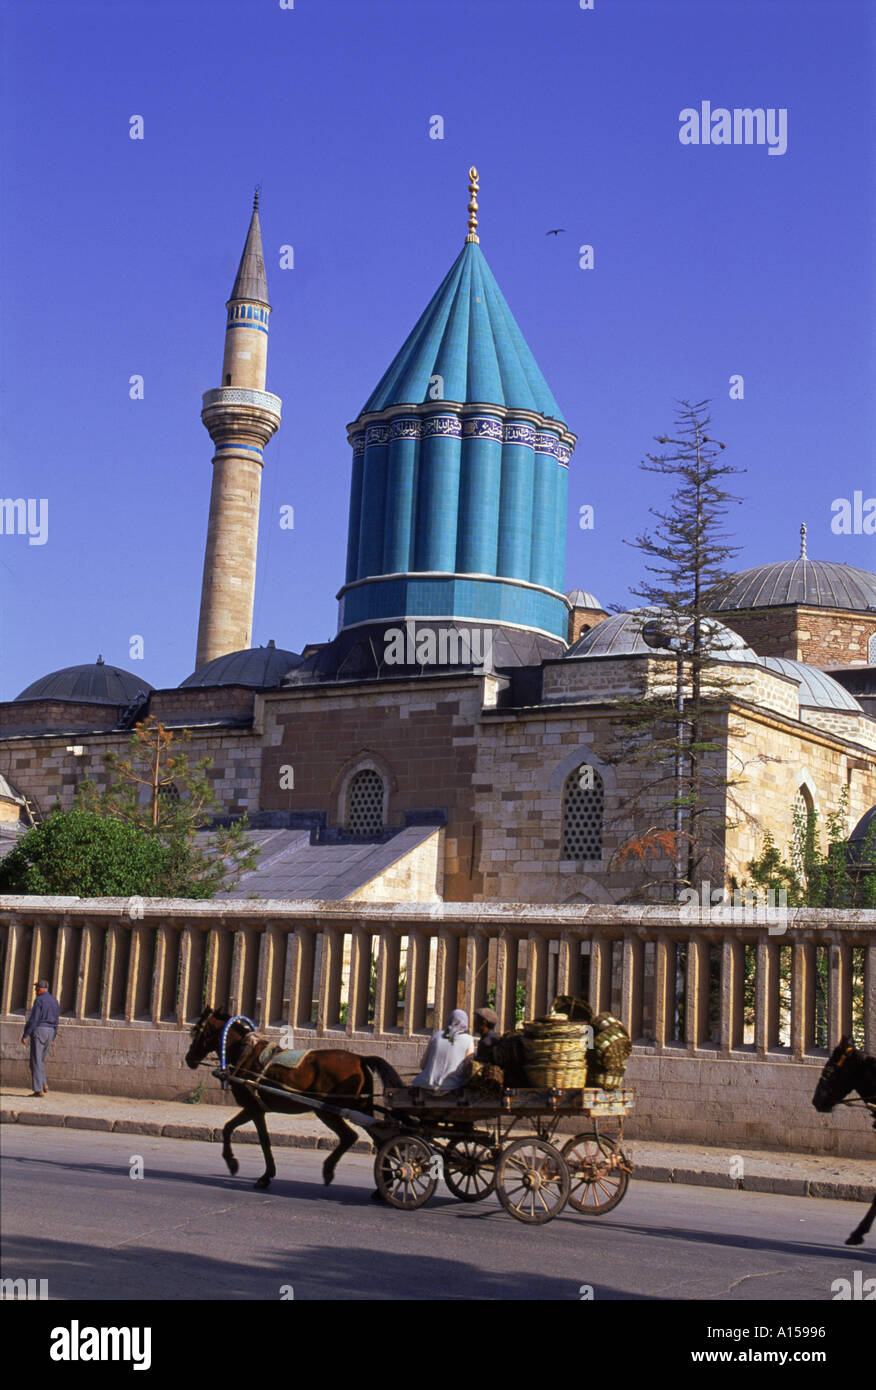 Horse and cart passes the Mevlana Tekke Museum with its green tower and minaret formerly the monastery or tekke of the Whirling - Stock Image